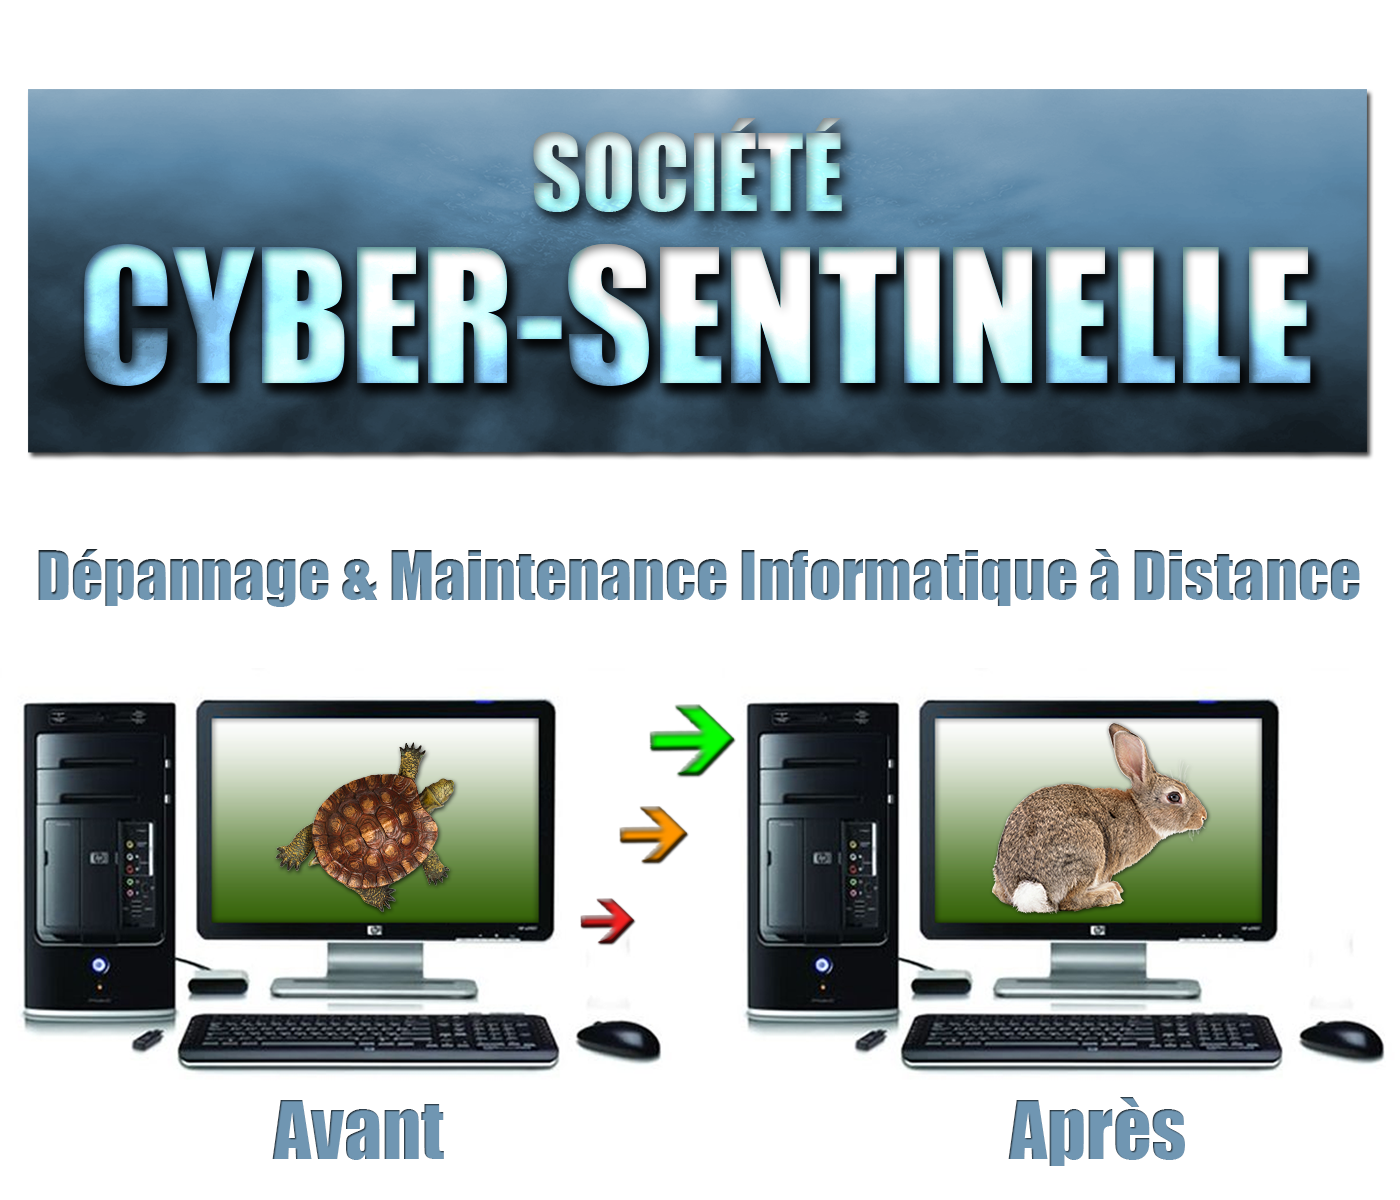 soci t cyber sentinelle d pannage maintenance informatique distance. Black Bedroom Furniture Sets. Home Design Ideas